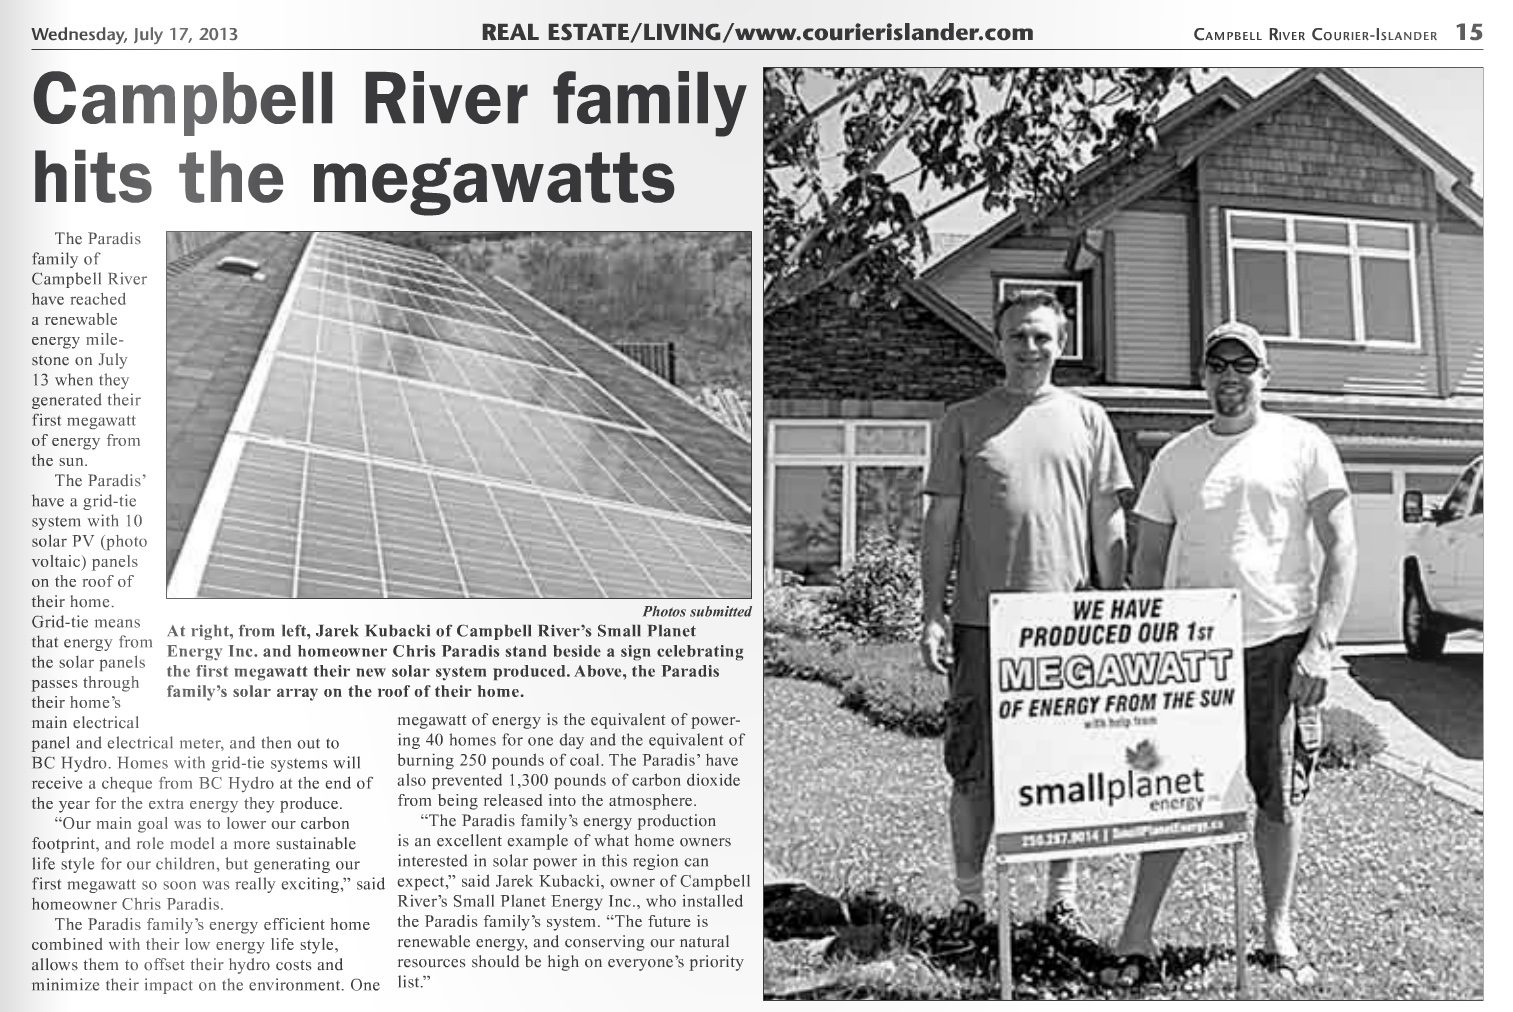 20130713-Campbell-River-Courier-Islander-article